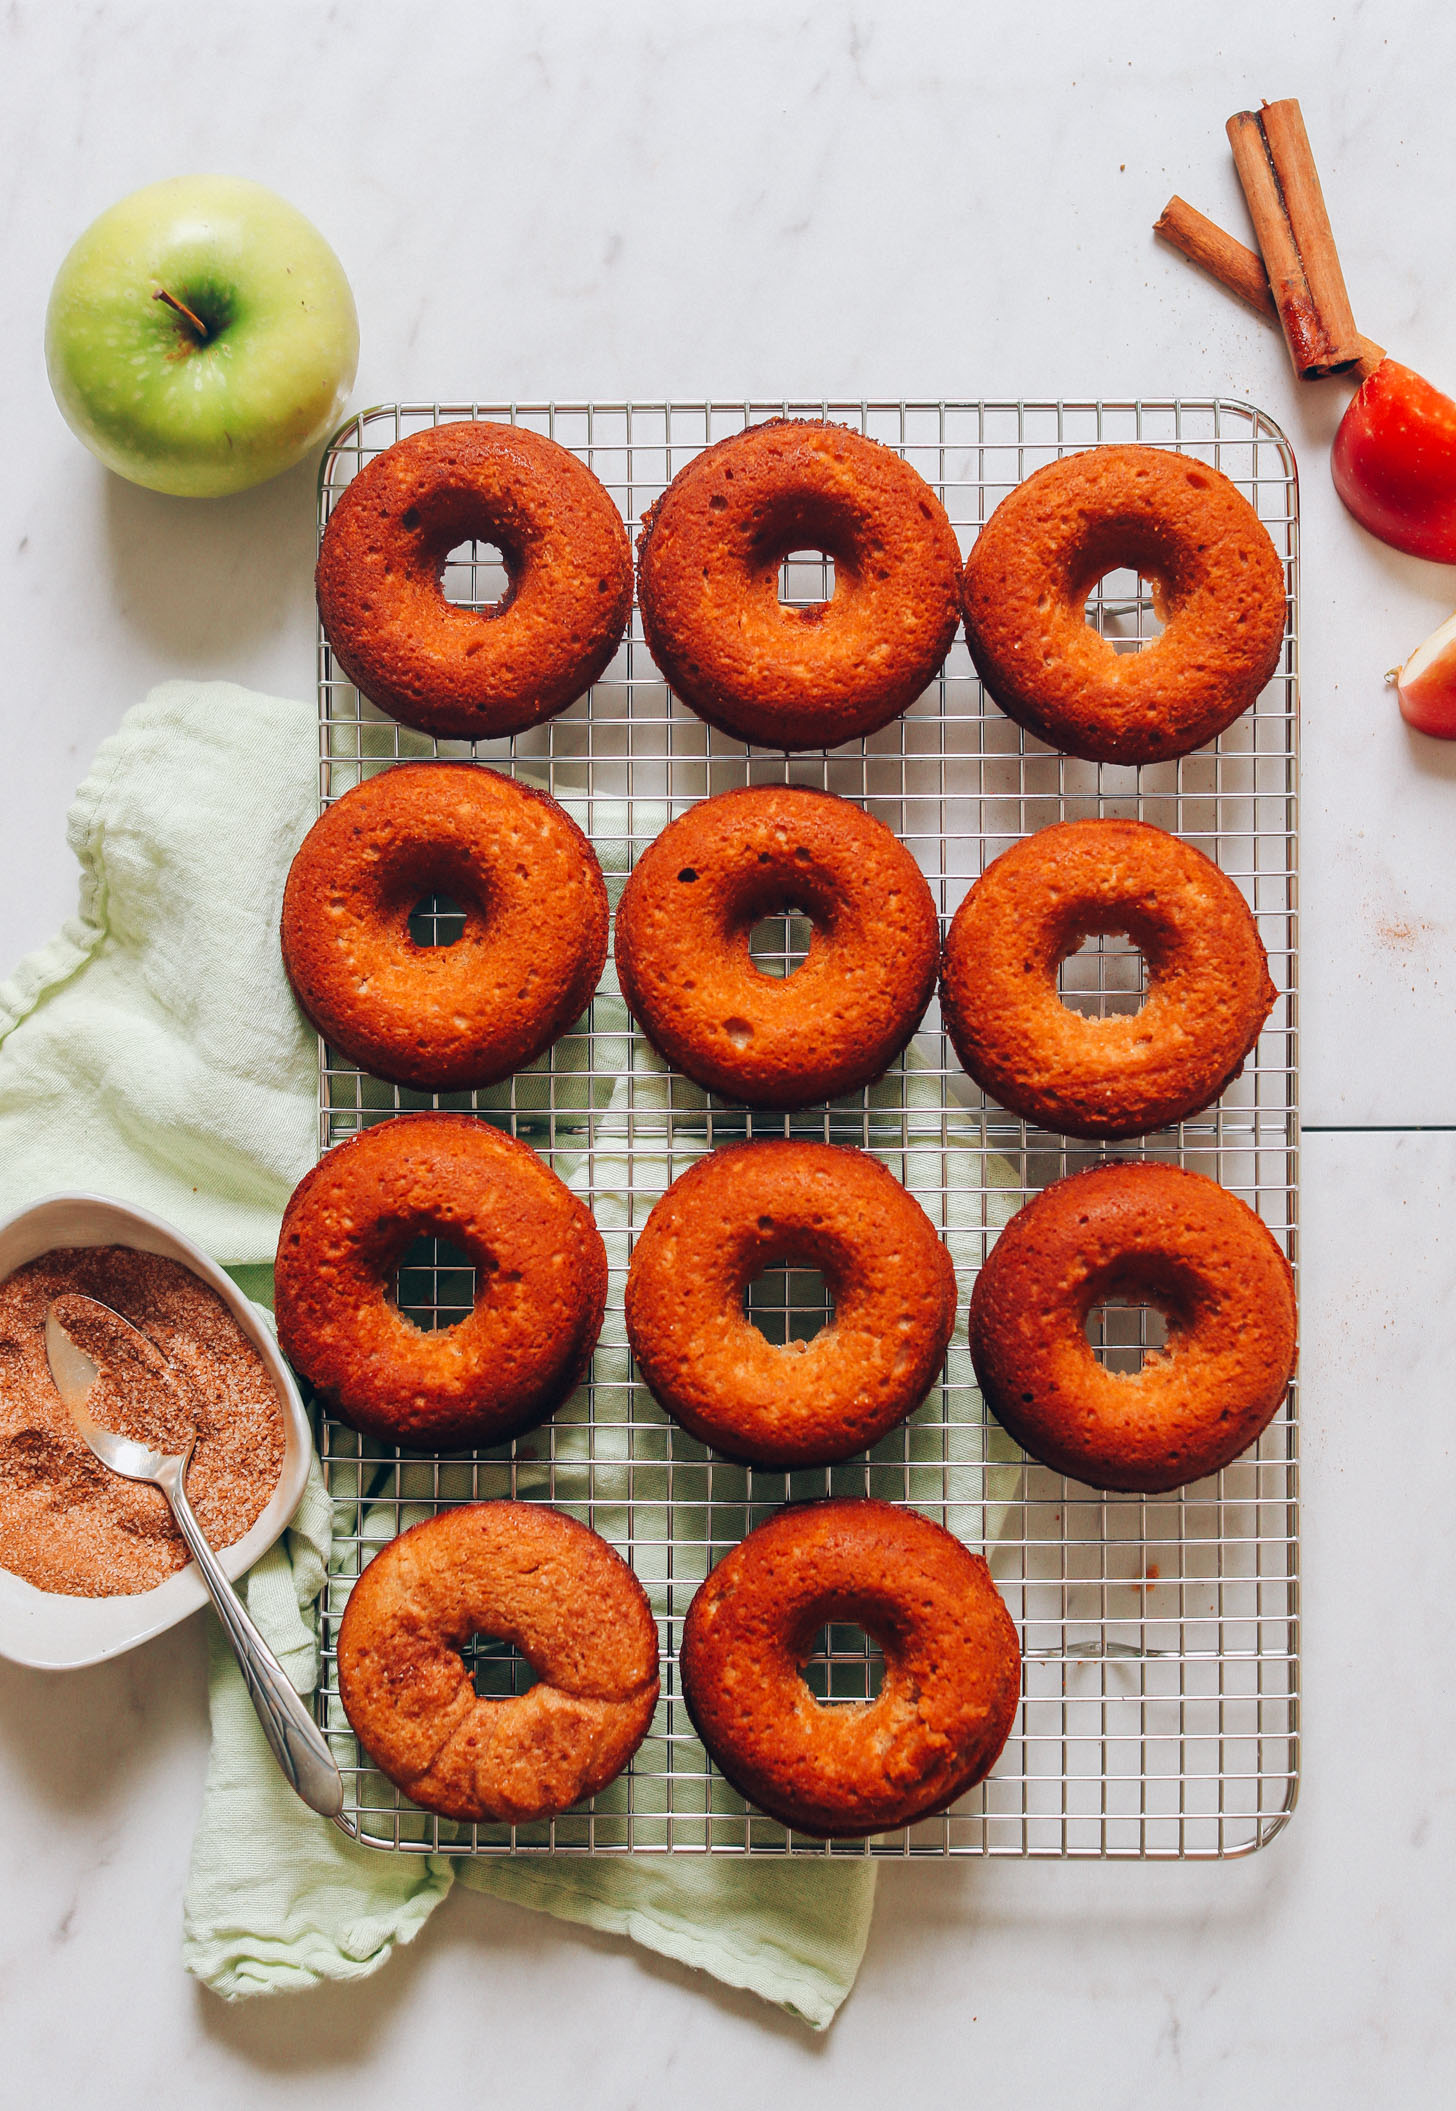 Freshly baked Vegan Gluten-Free Apple Cider Donuts resting on a cooling rack